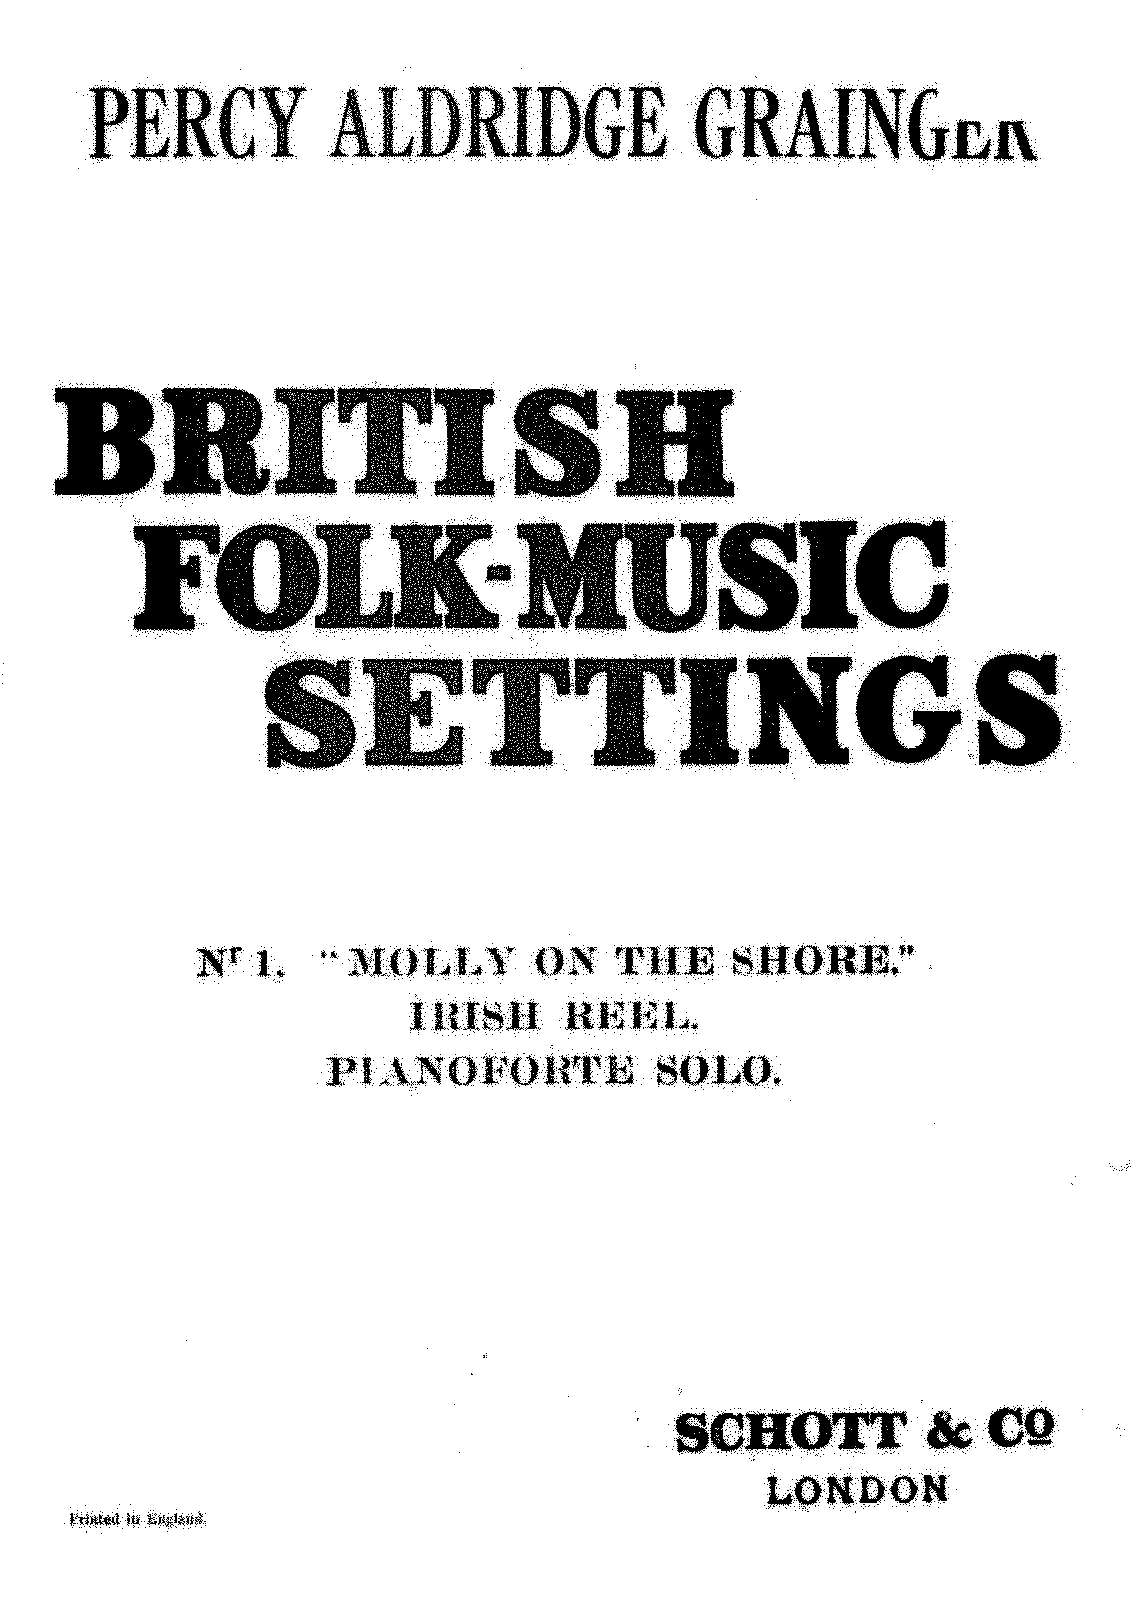 PMLP329184-Grainger - British Folk Music Settings no 1 - Molly on the Shore - Schott Edition.pdf